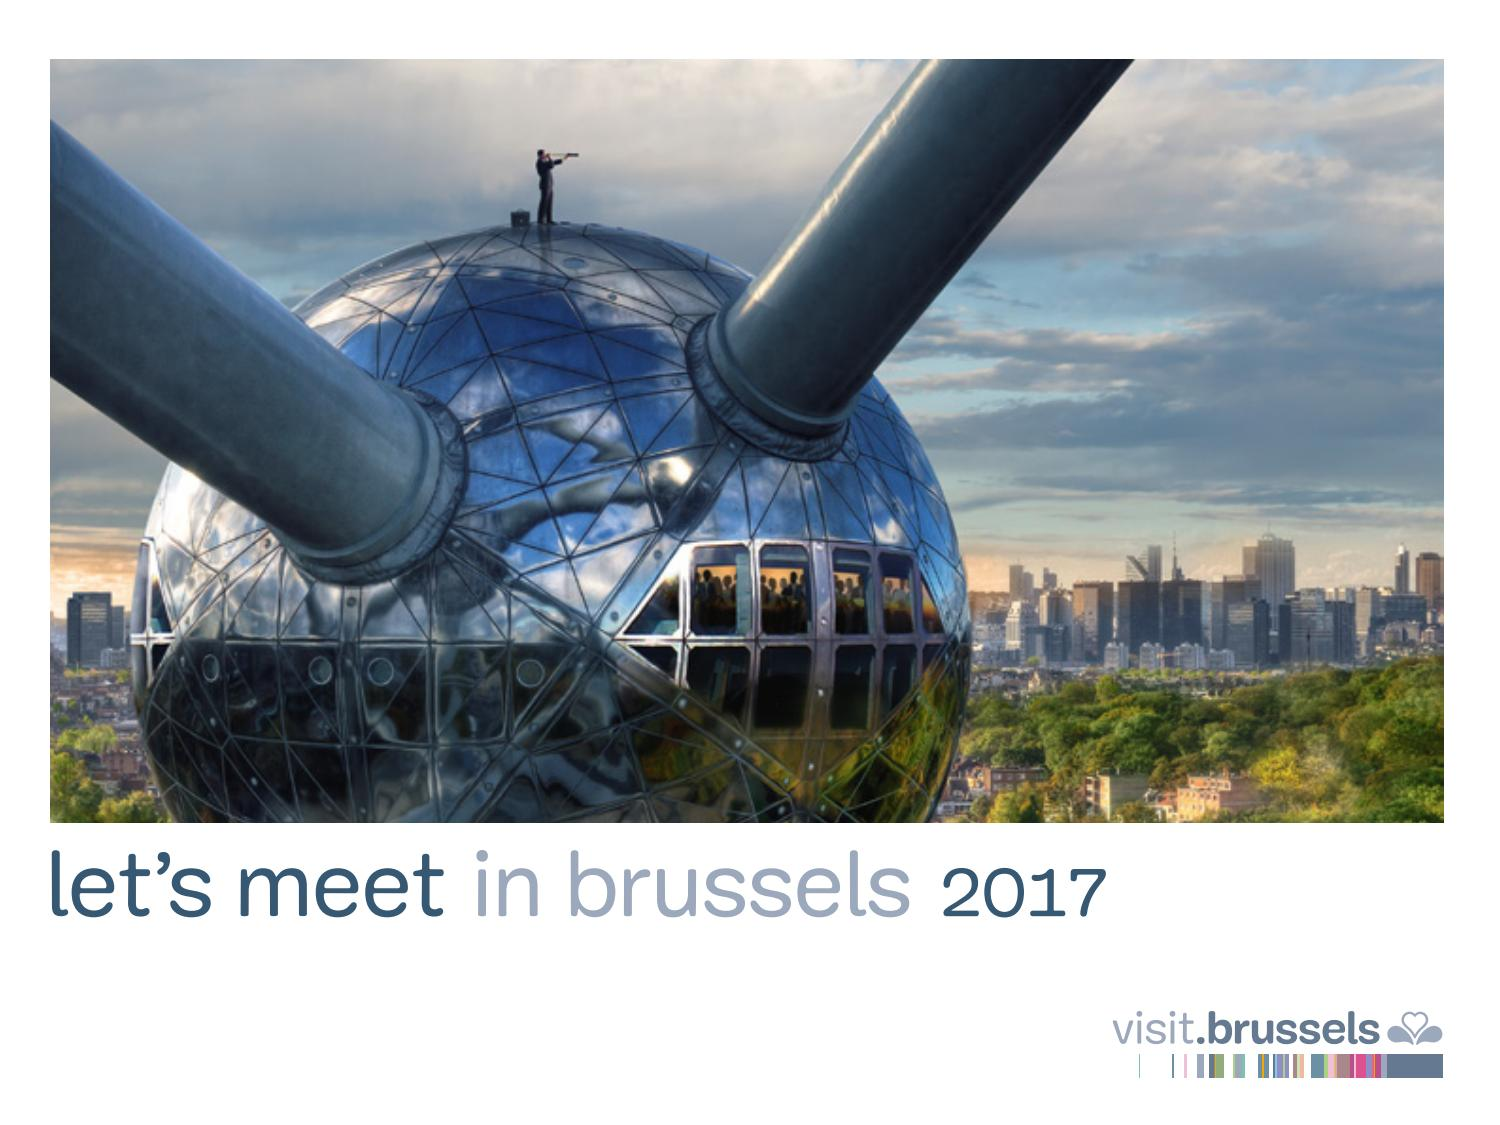 Let's Meet in Brussels 2017 by visit brussels - issuu